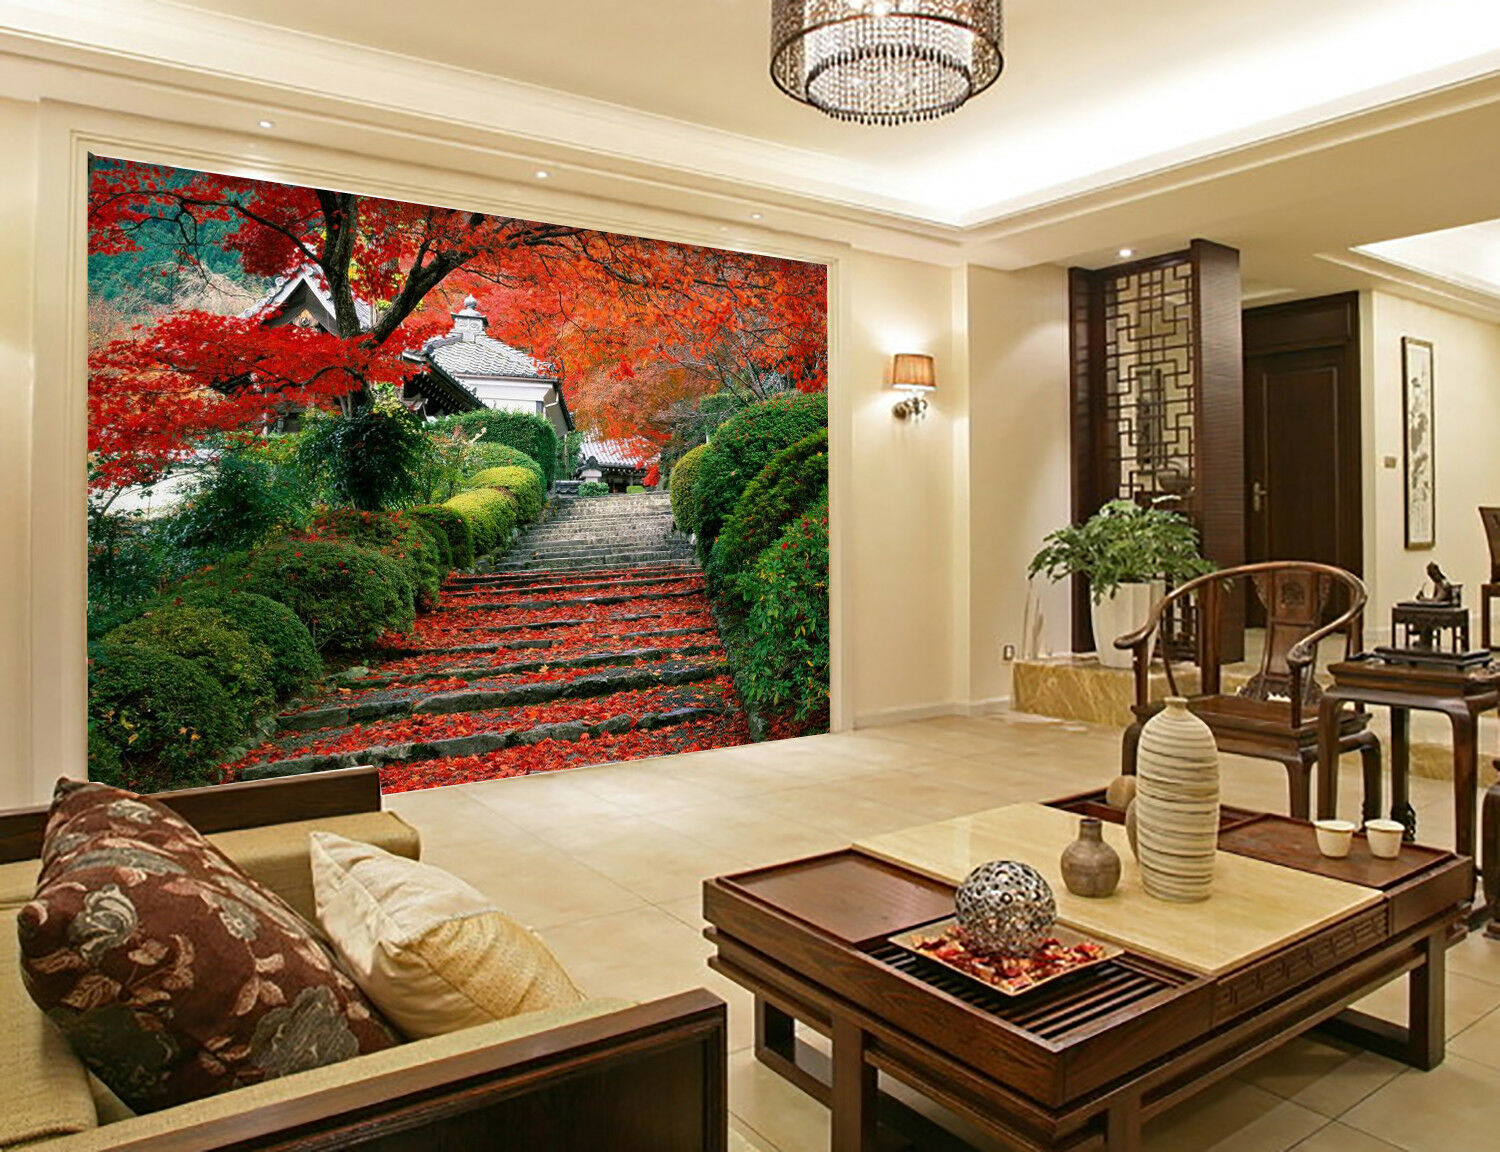 3D Maple Tree 455 Wallpaper Murals Wall Print Wallpaper Mural AJ WALL UK Summer